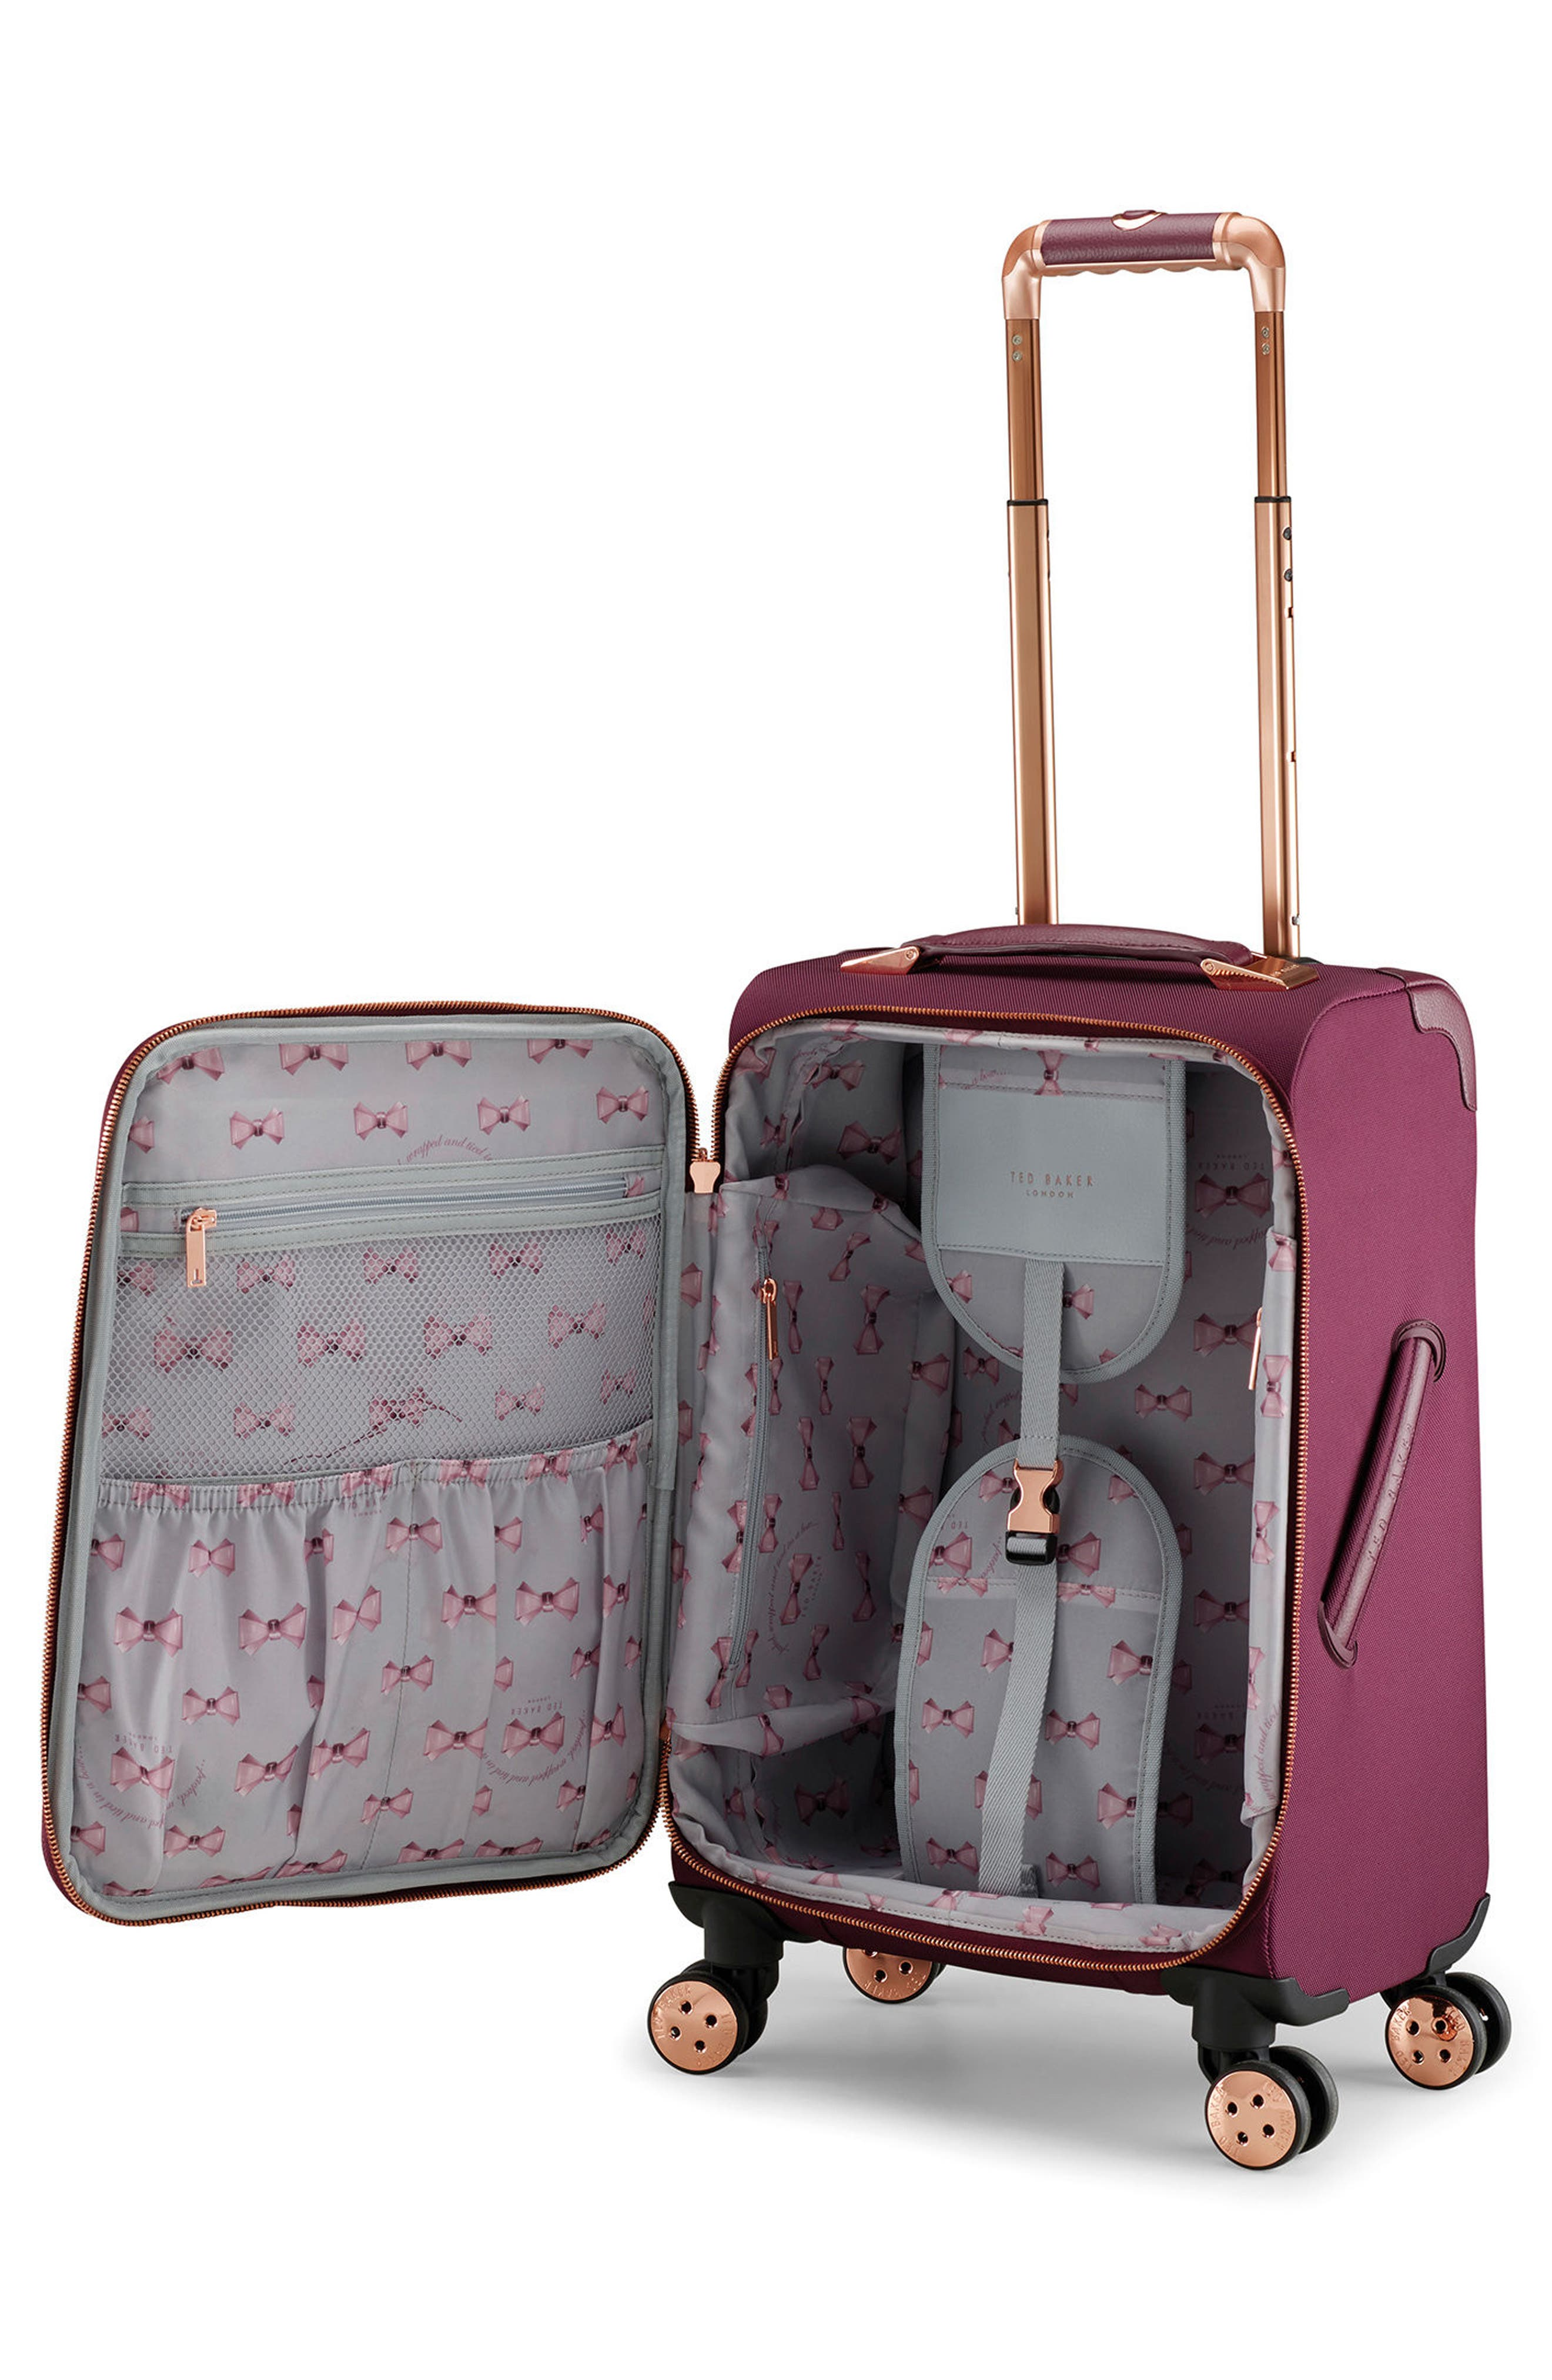 22-Inch Spinner Trolley Packing Case,                             Alternate thumbnail 2, color,                             BURGUNDY